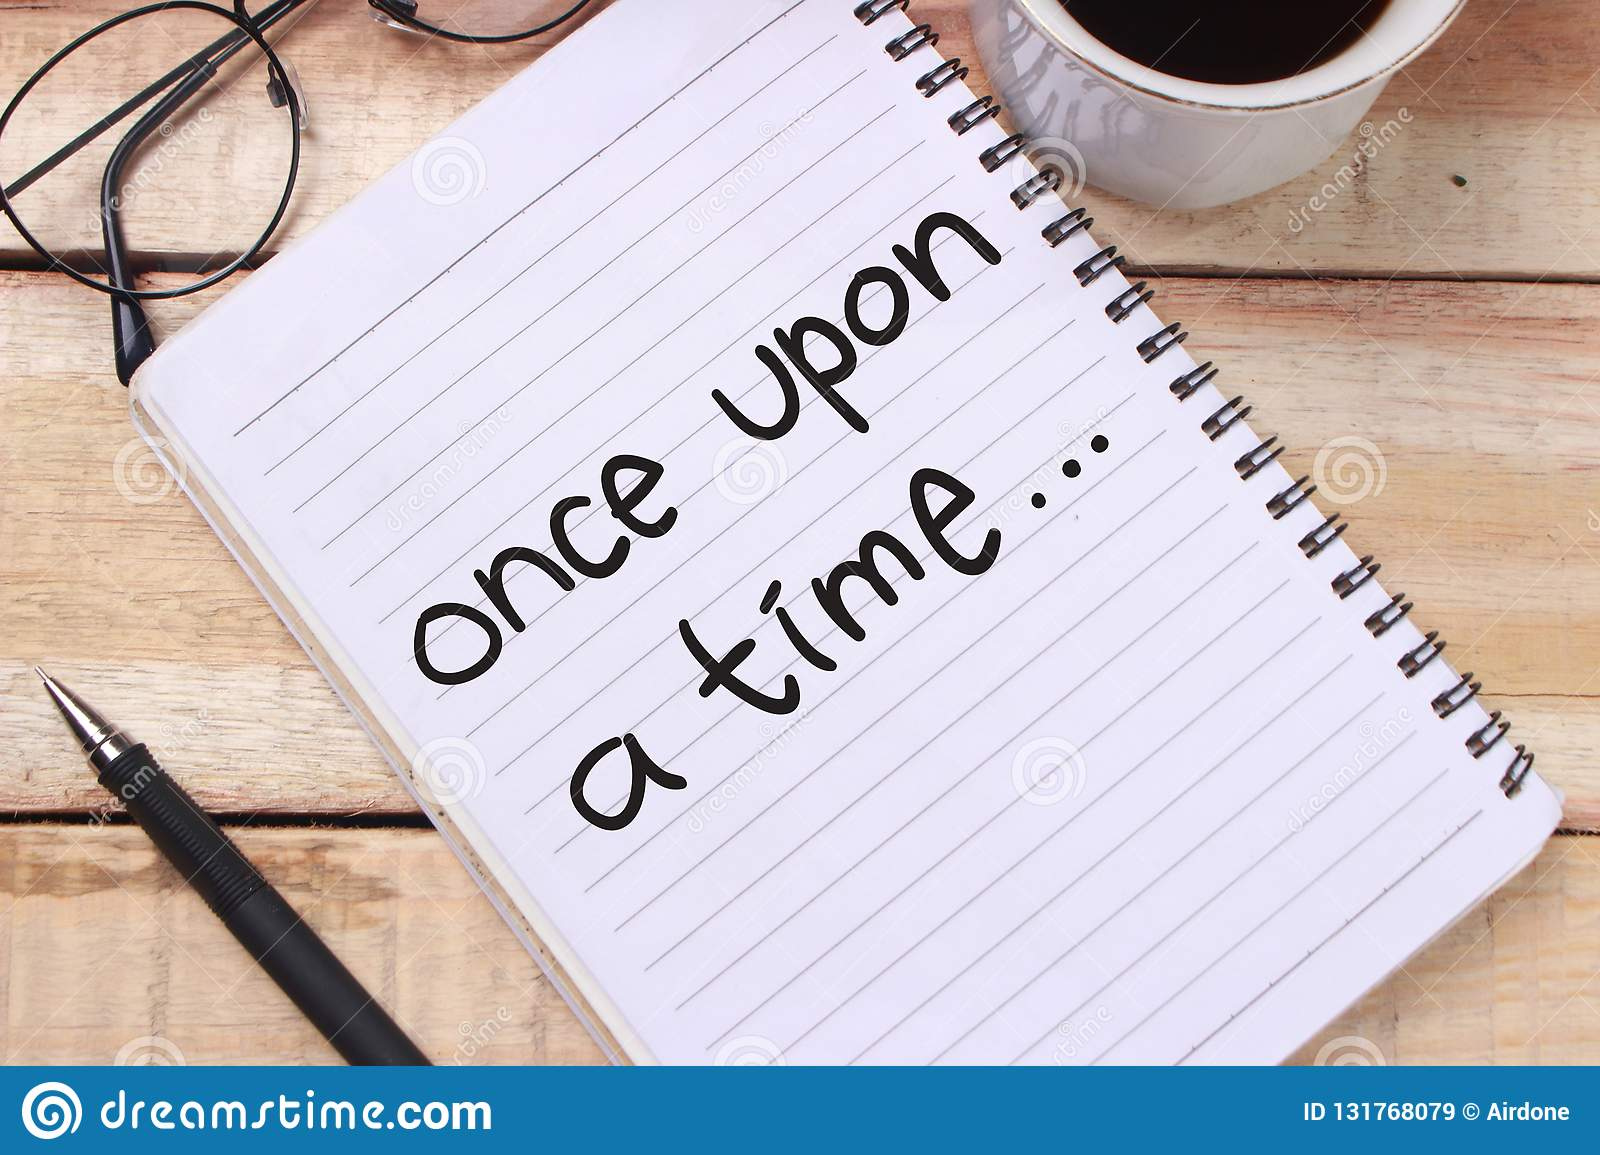 once upon a time story telling motivational inspirational quotes